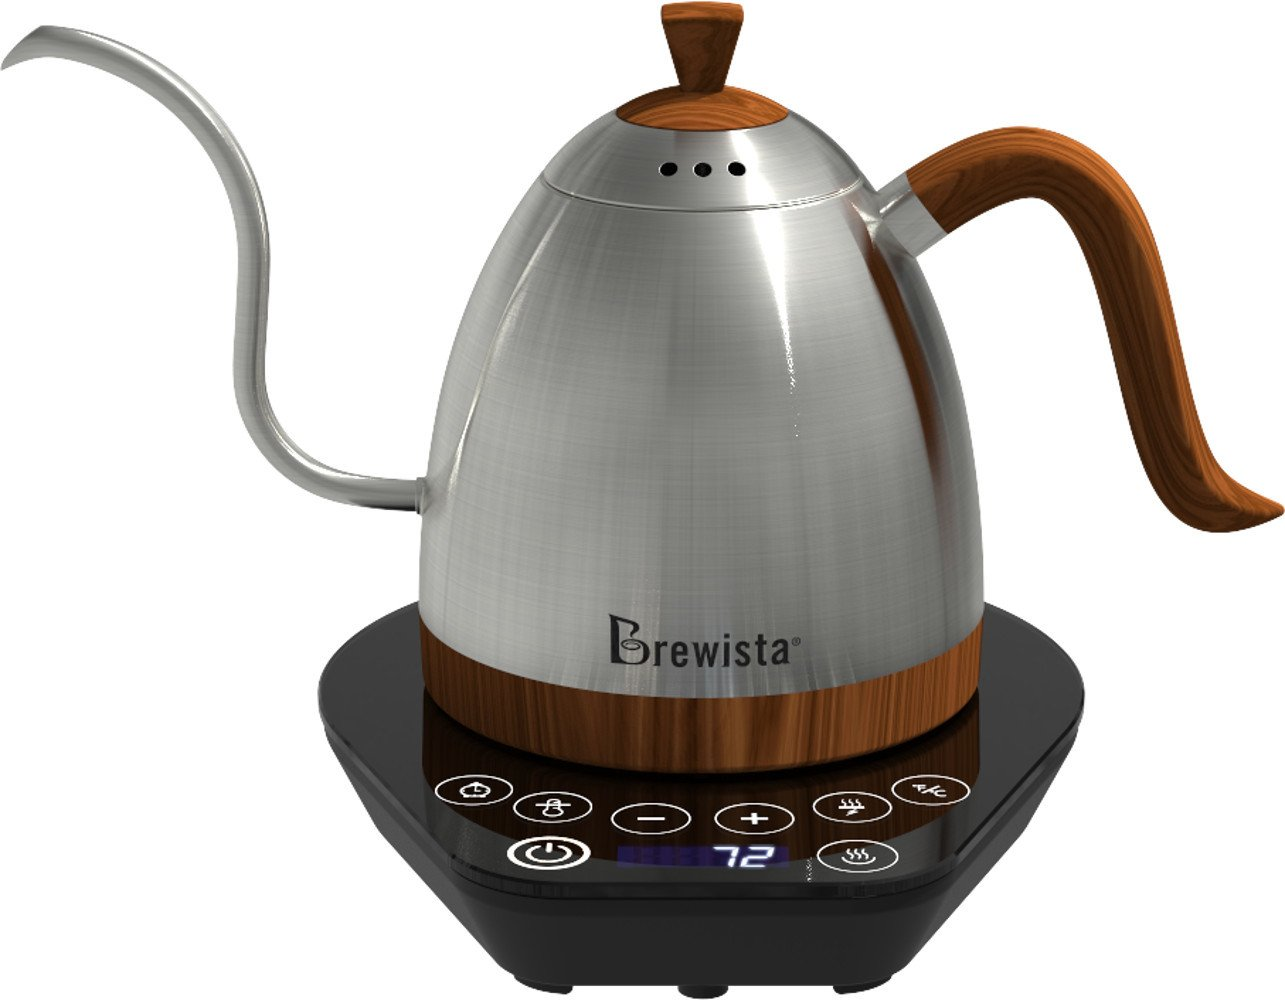 Brewista Artisan Gooseneck Variable Kettle (Silver)